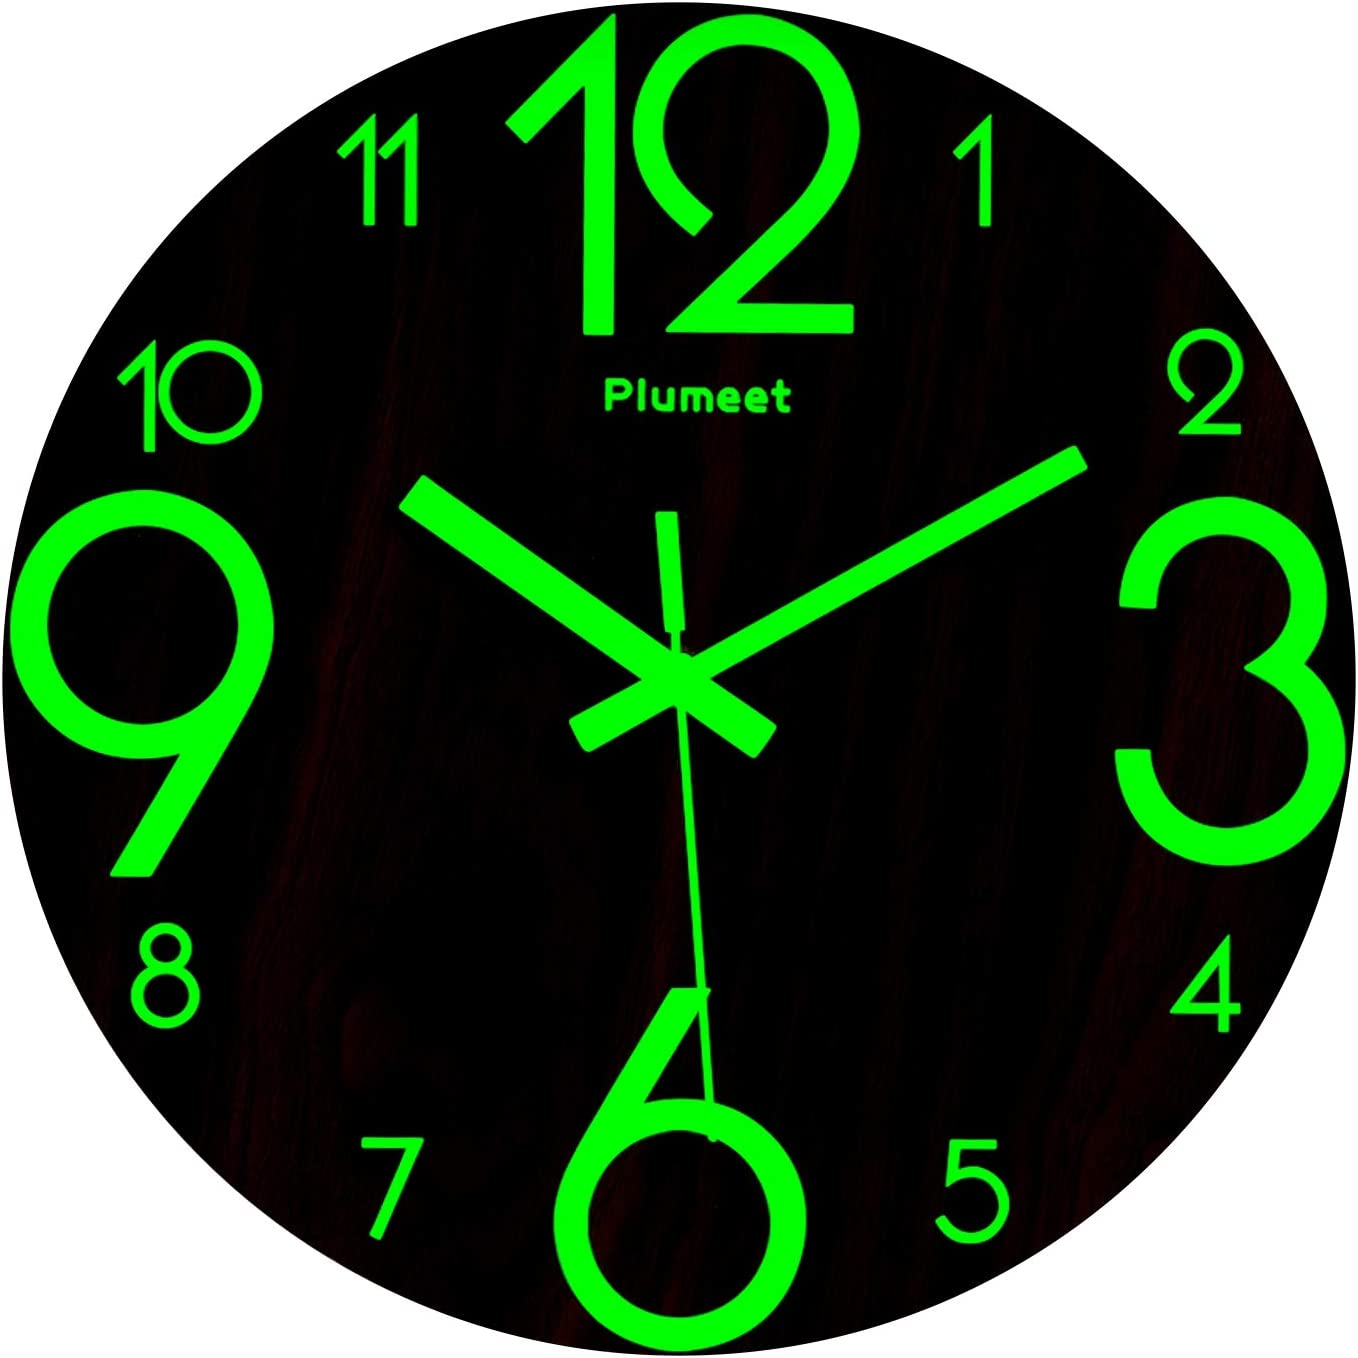 Plumeet Luminous Wall Clocks - 12'' Non-Ticking Silent Wooden Clock with Night Light - Large Decorative Wall Clock for Kitchen Office Bedroom (Wood)